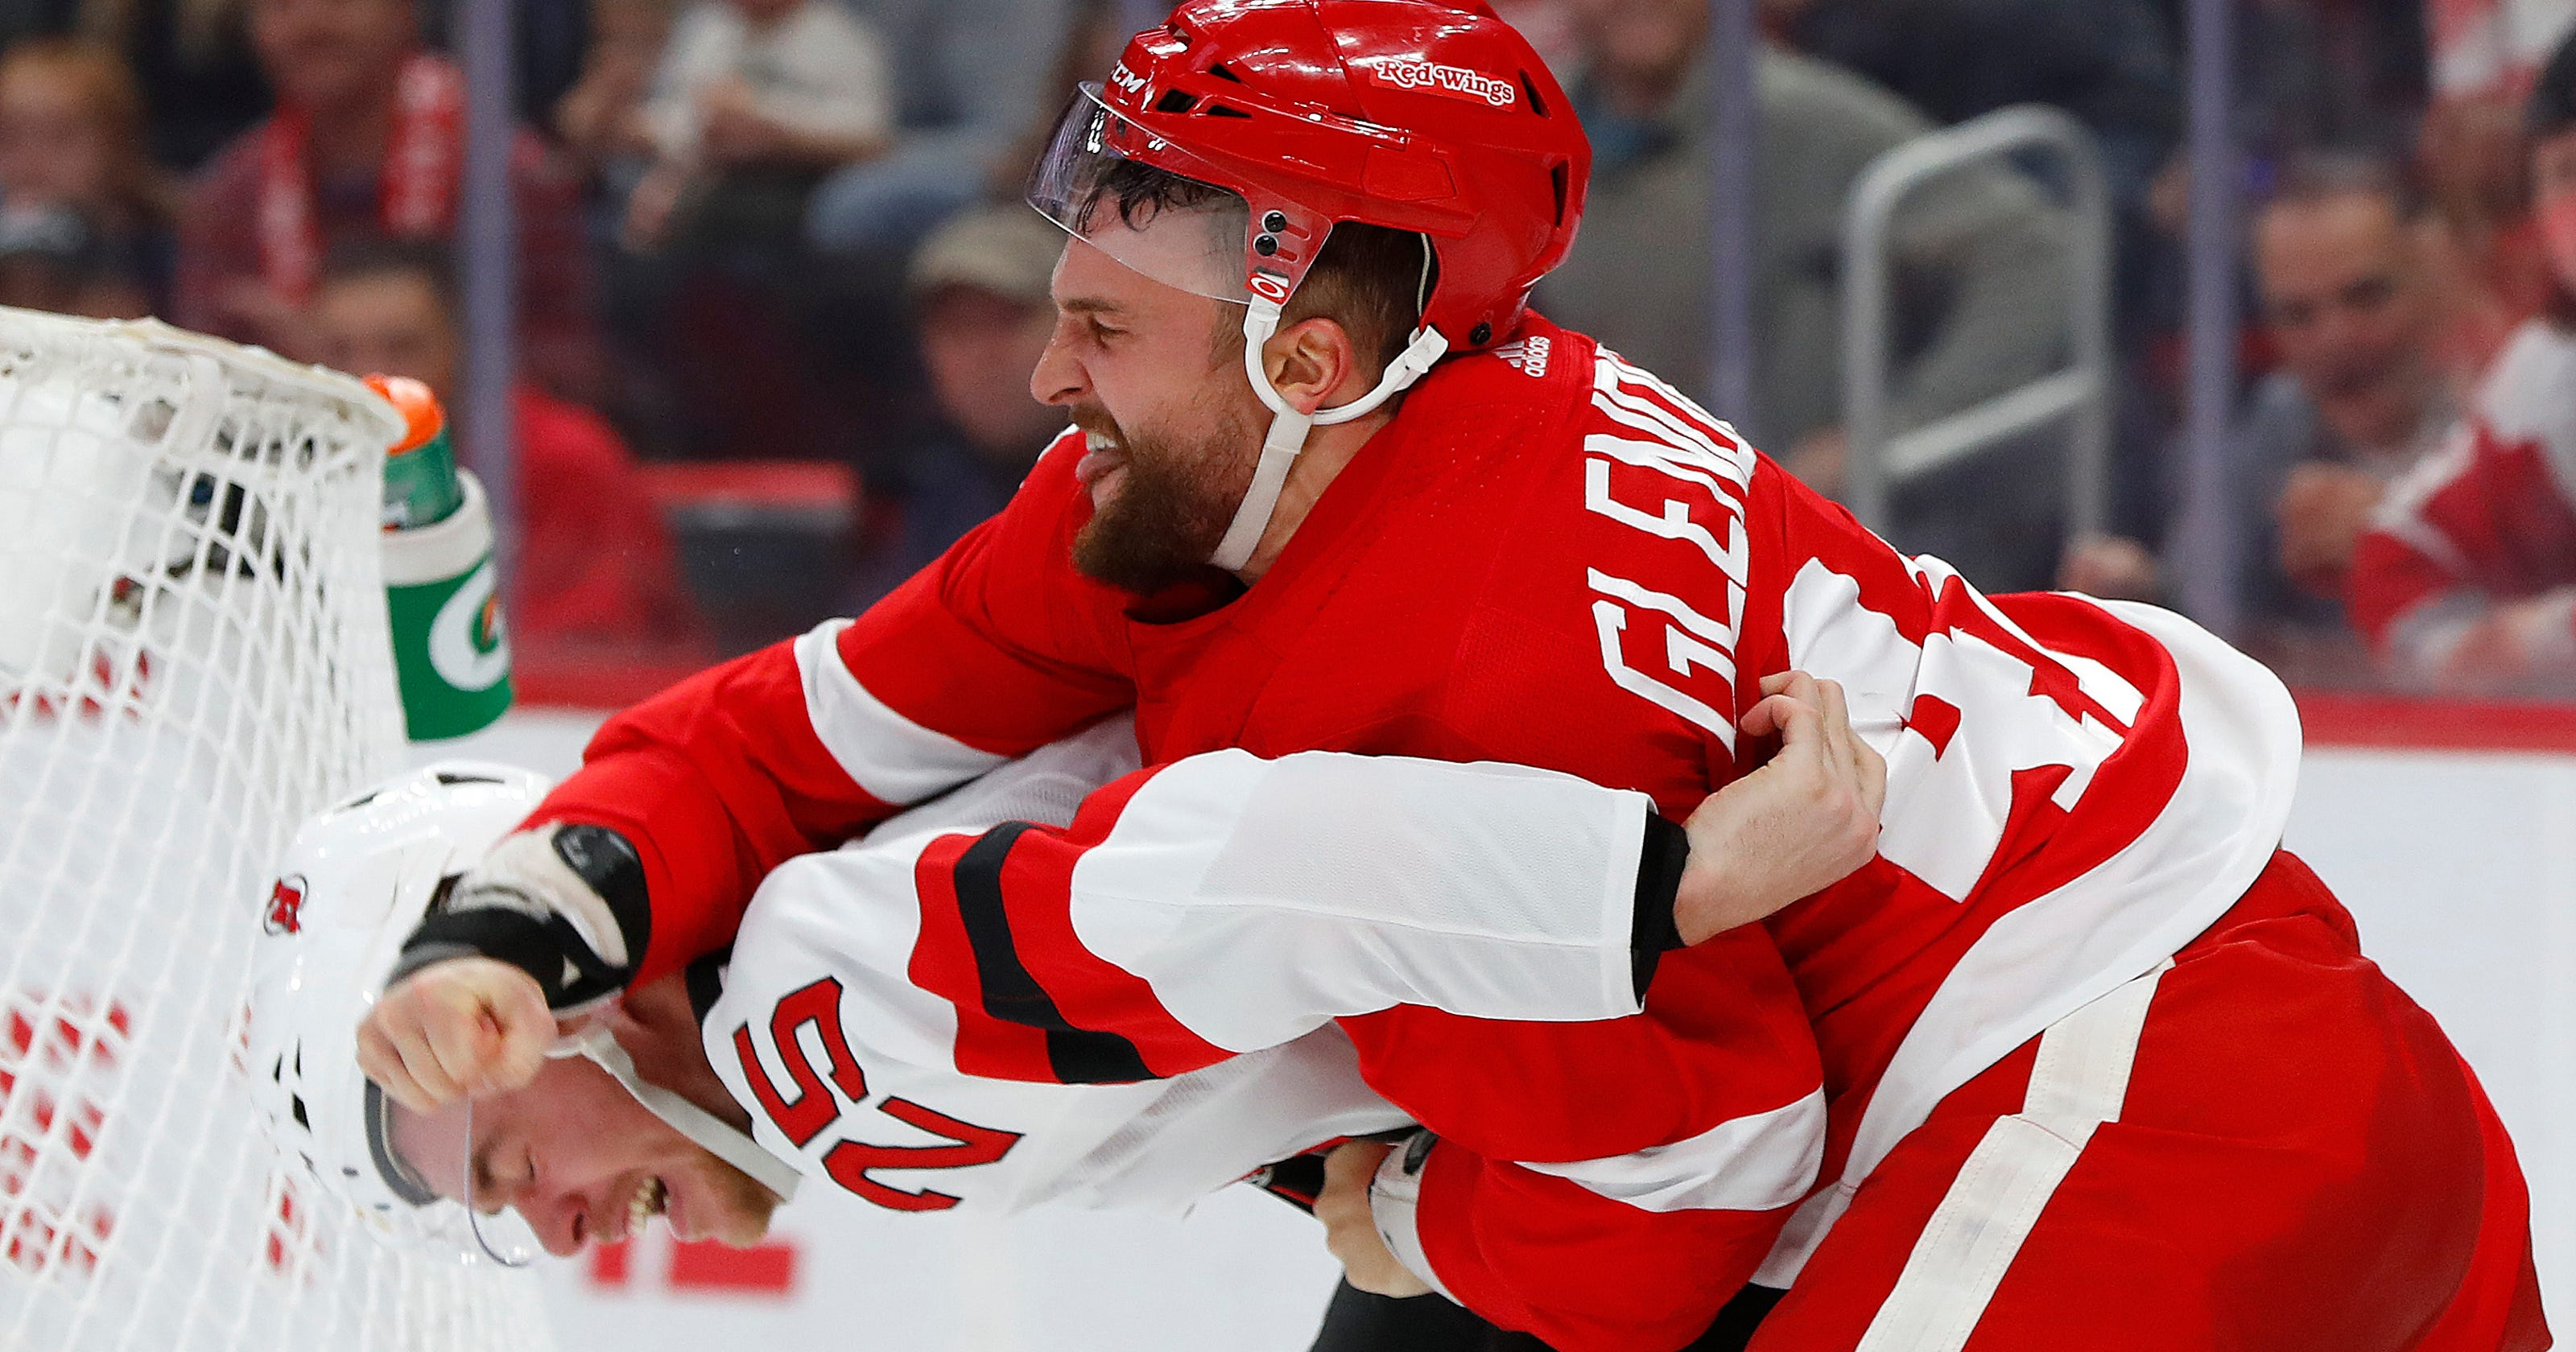 Red Wings beat Devils 4-3 with 2 short-handed goals in 3rd e5349fc20